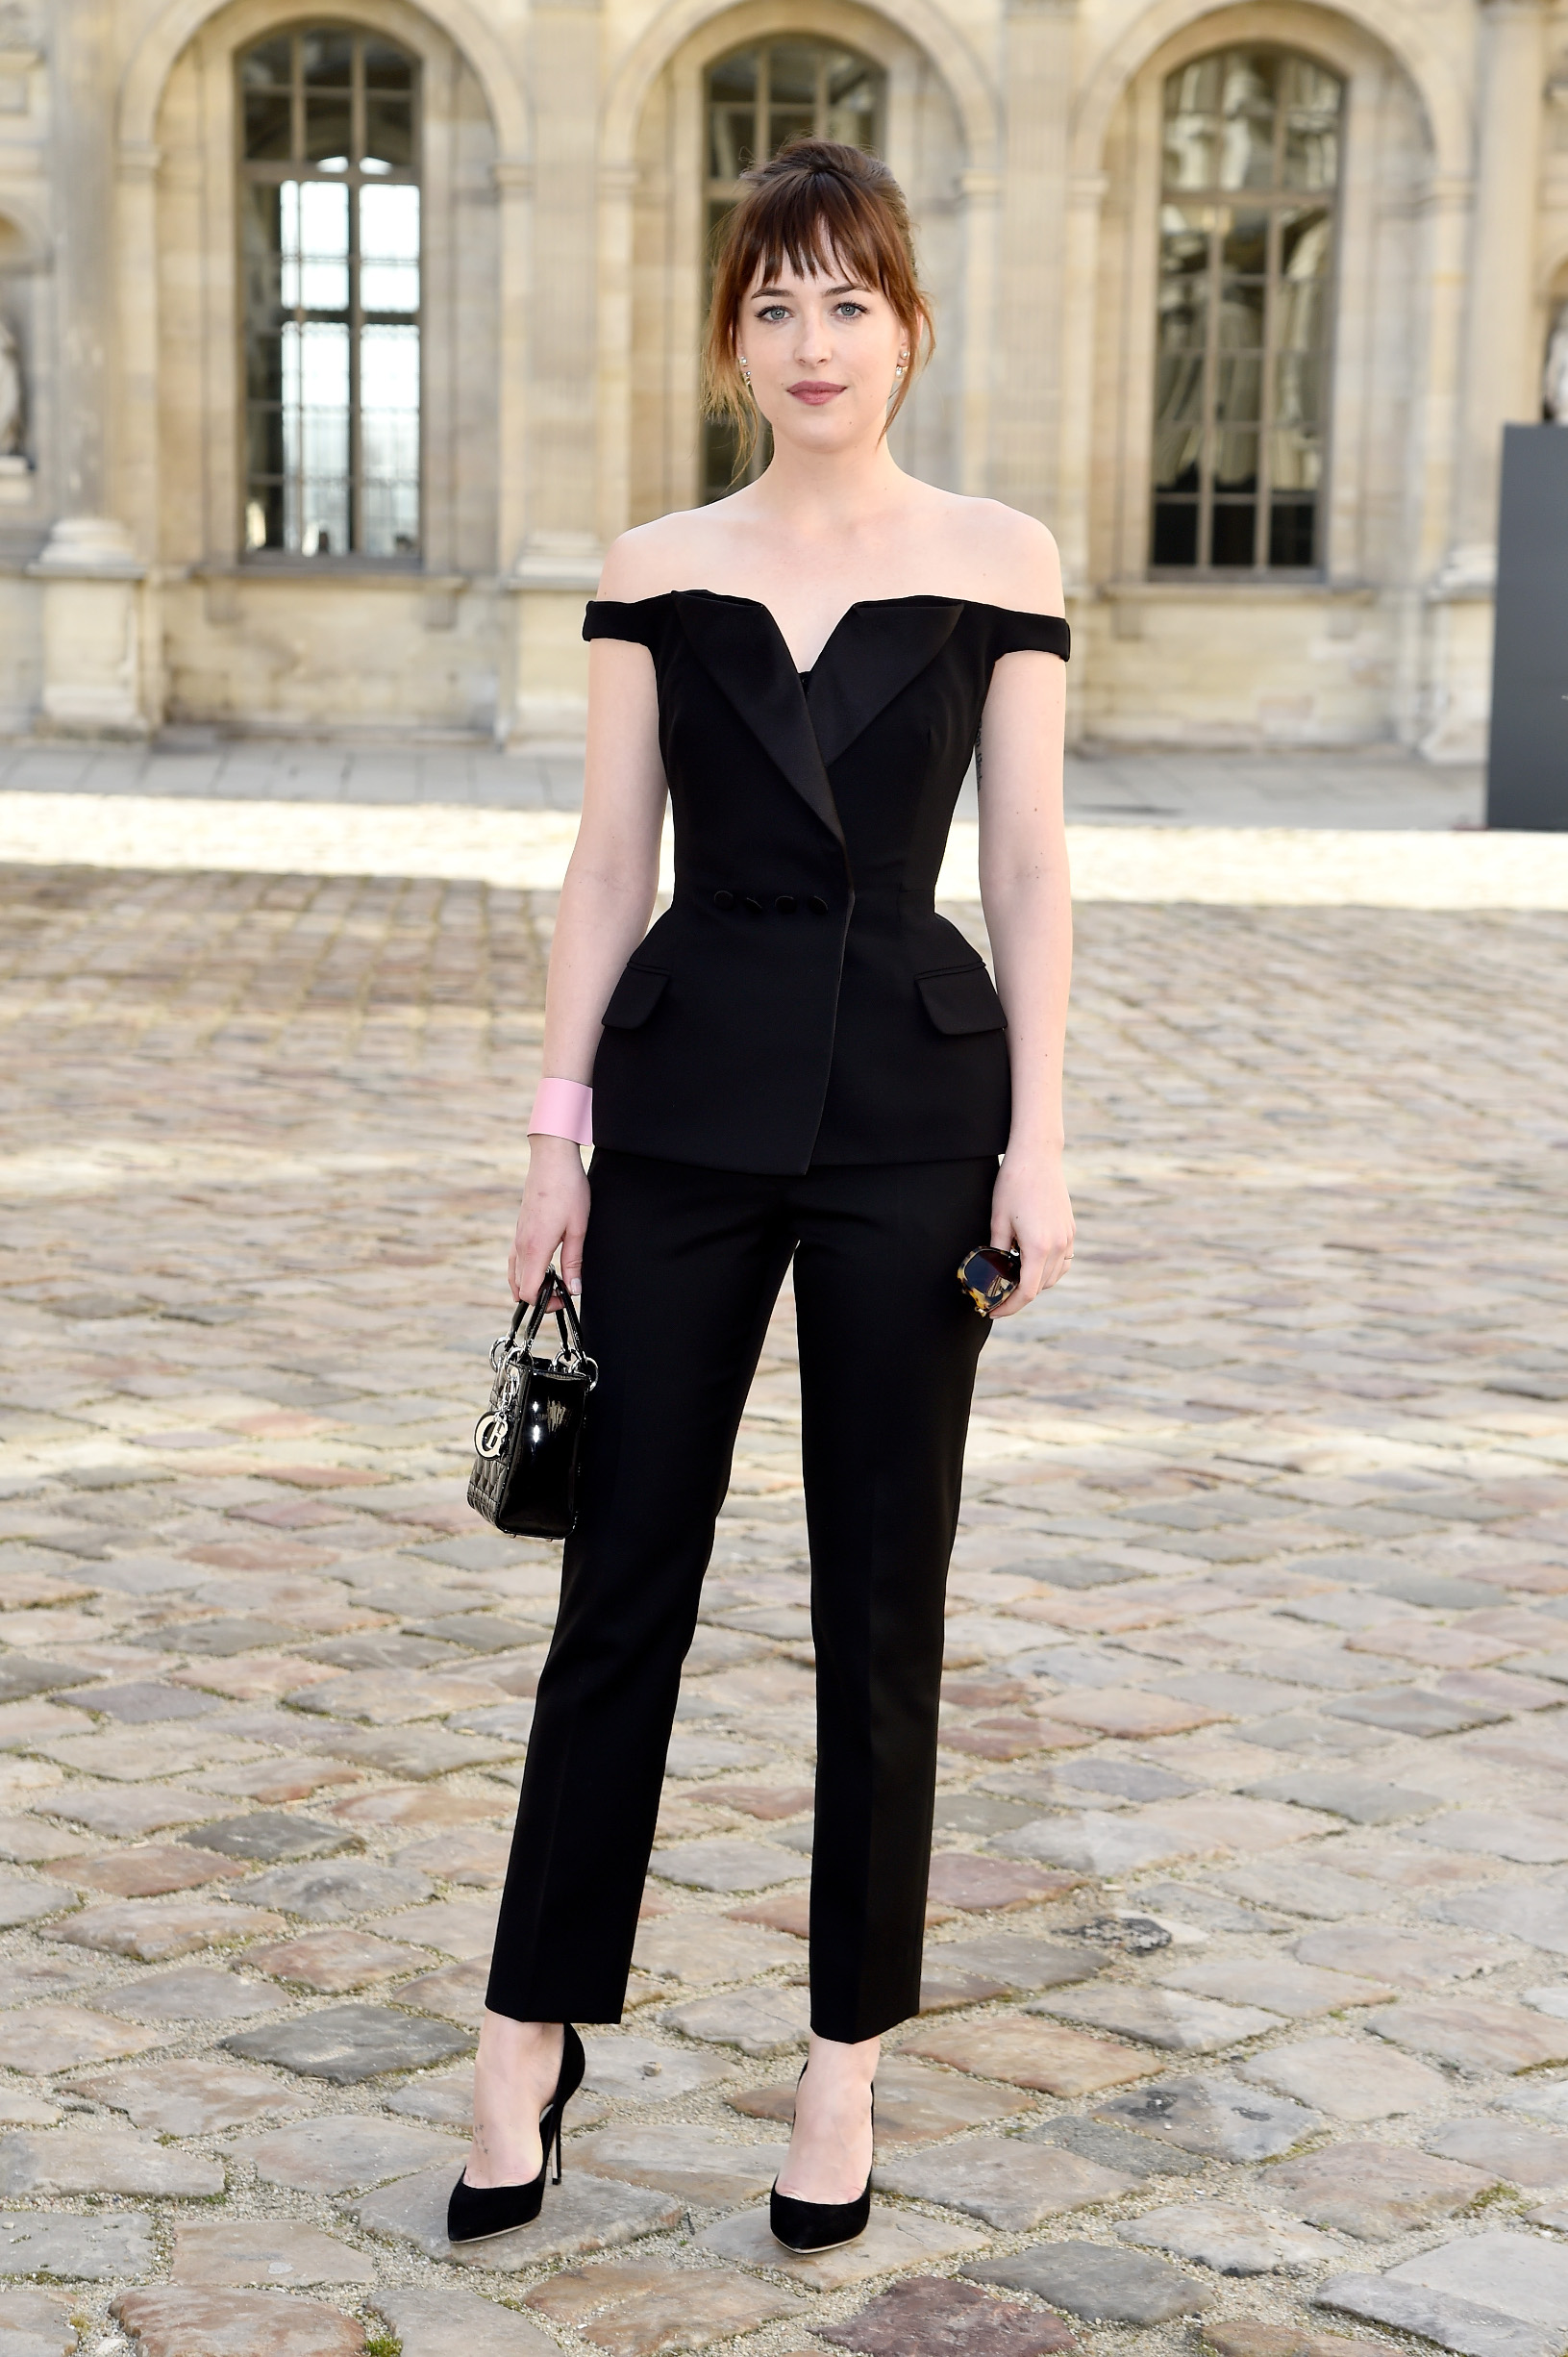 PARIS, FRANCE - MARCH 06:  Actress Dakota Johnson attends the Christian Dior show as part of the Paris Fashion Week Womenswear Fall/Winter 2015/2016 on March 6, 2015 in Paris, France.  (Photo by Pascal Le Segretain/Getty Images)